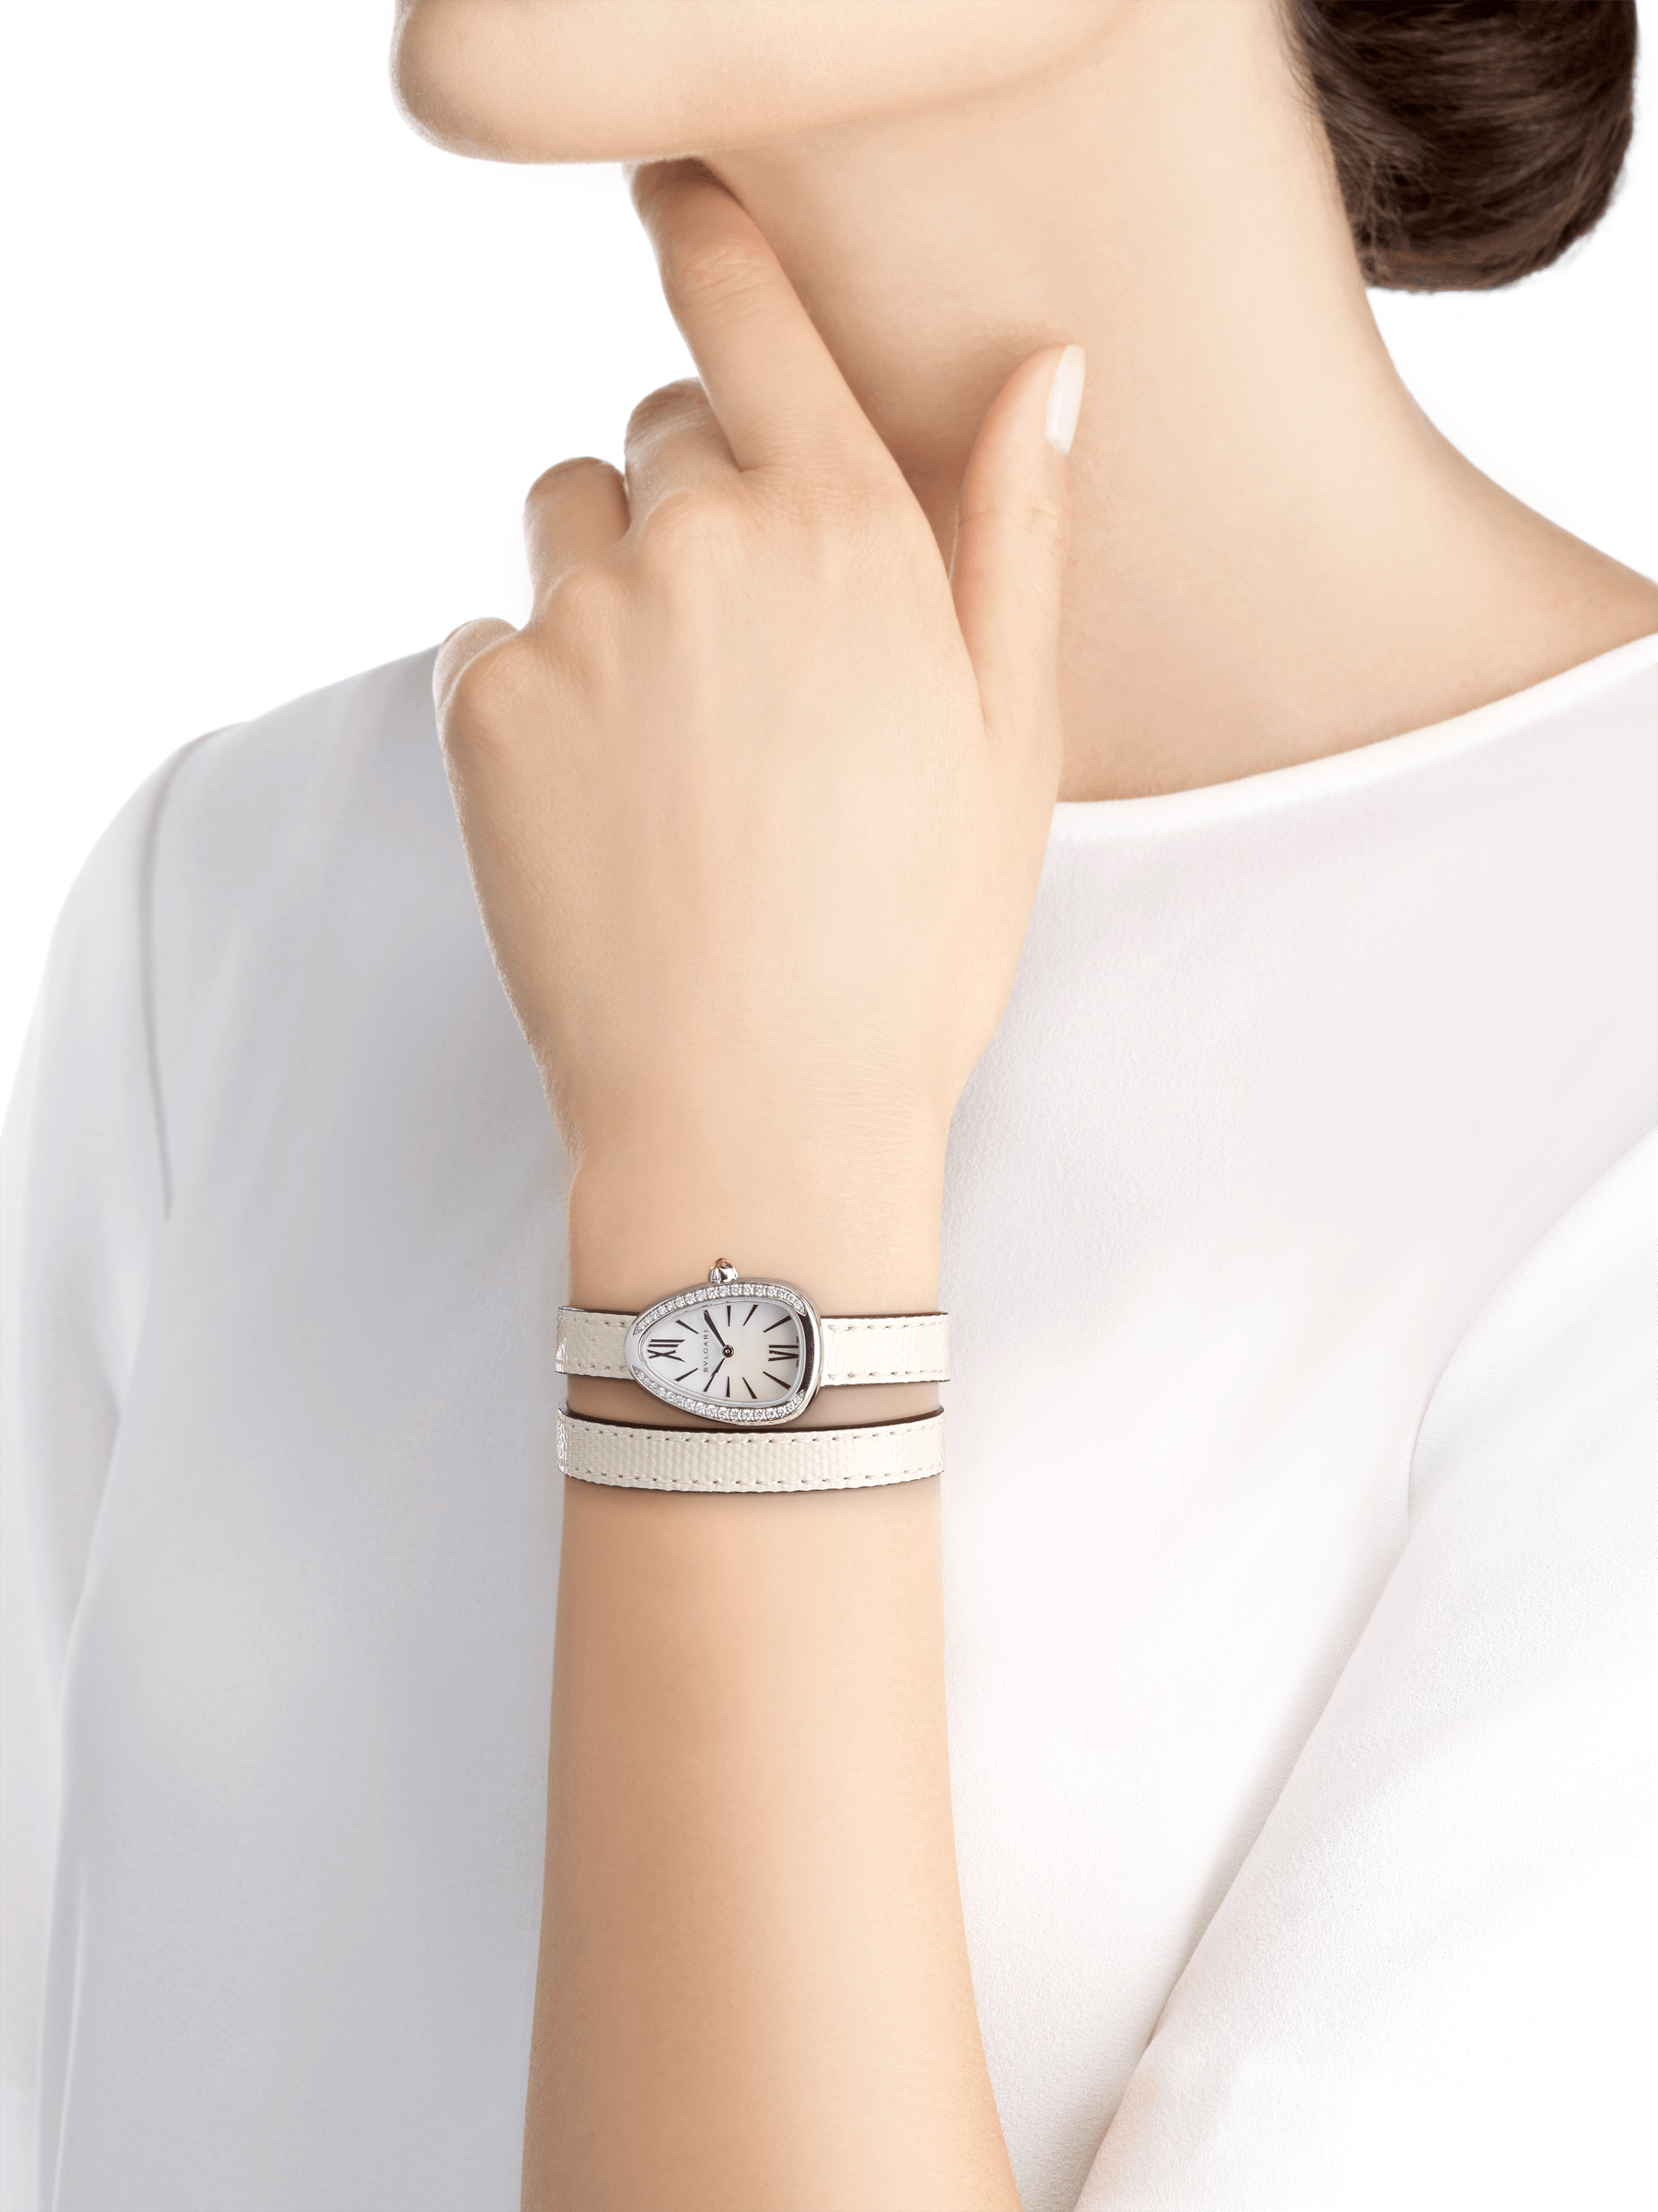 Serpenti watch with stainless steel case set with diamonds, white mother-of-pearl dial and interchangeable double spiral bracelet in white karung leather. 102781 image 4